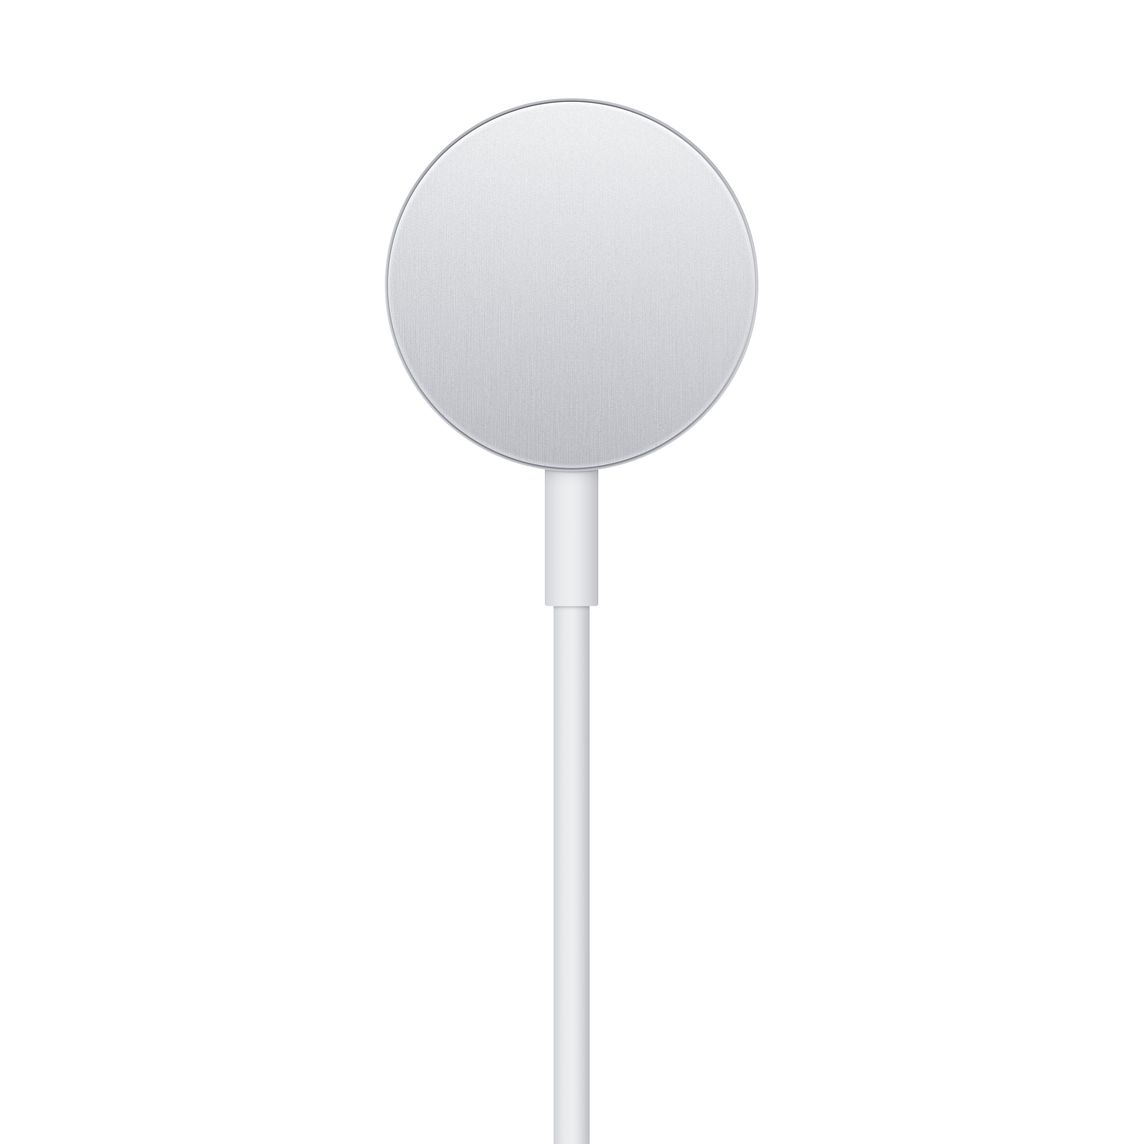 Image result for Apple I watch charger USB C 1m